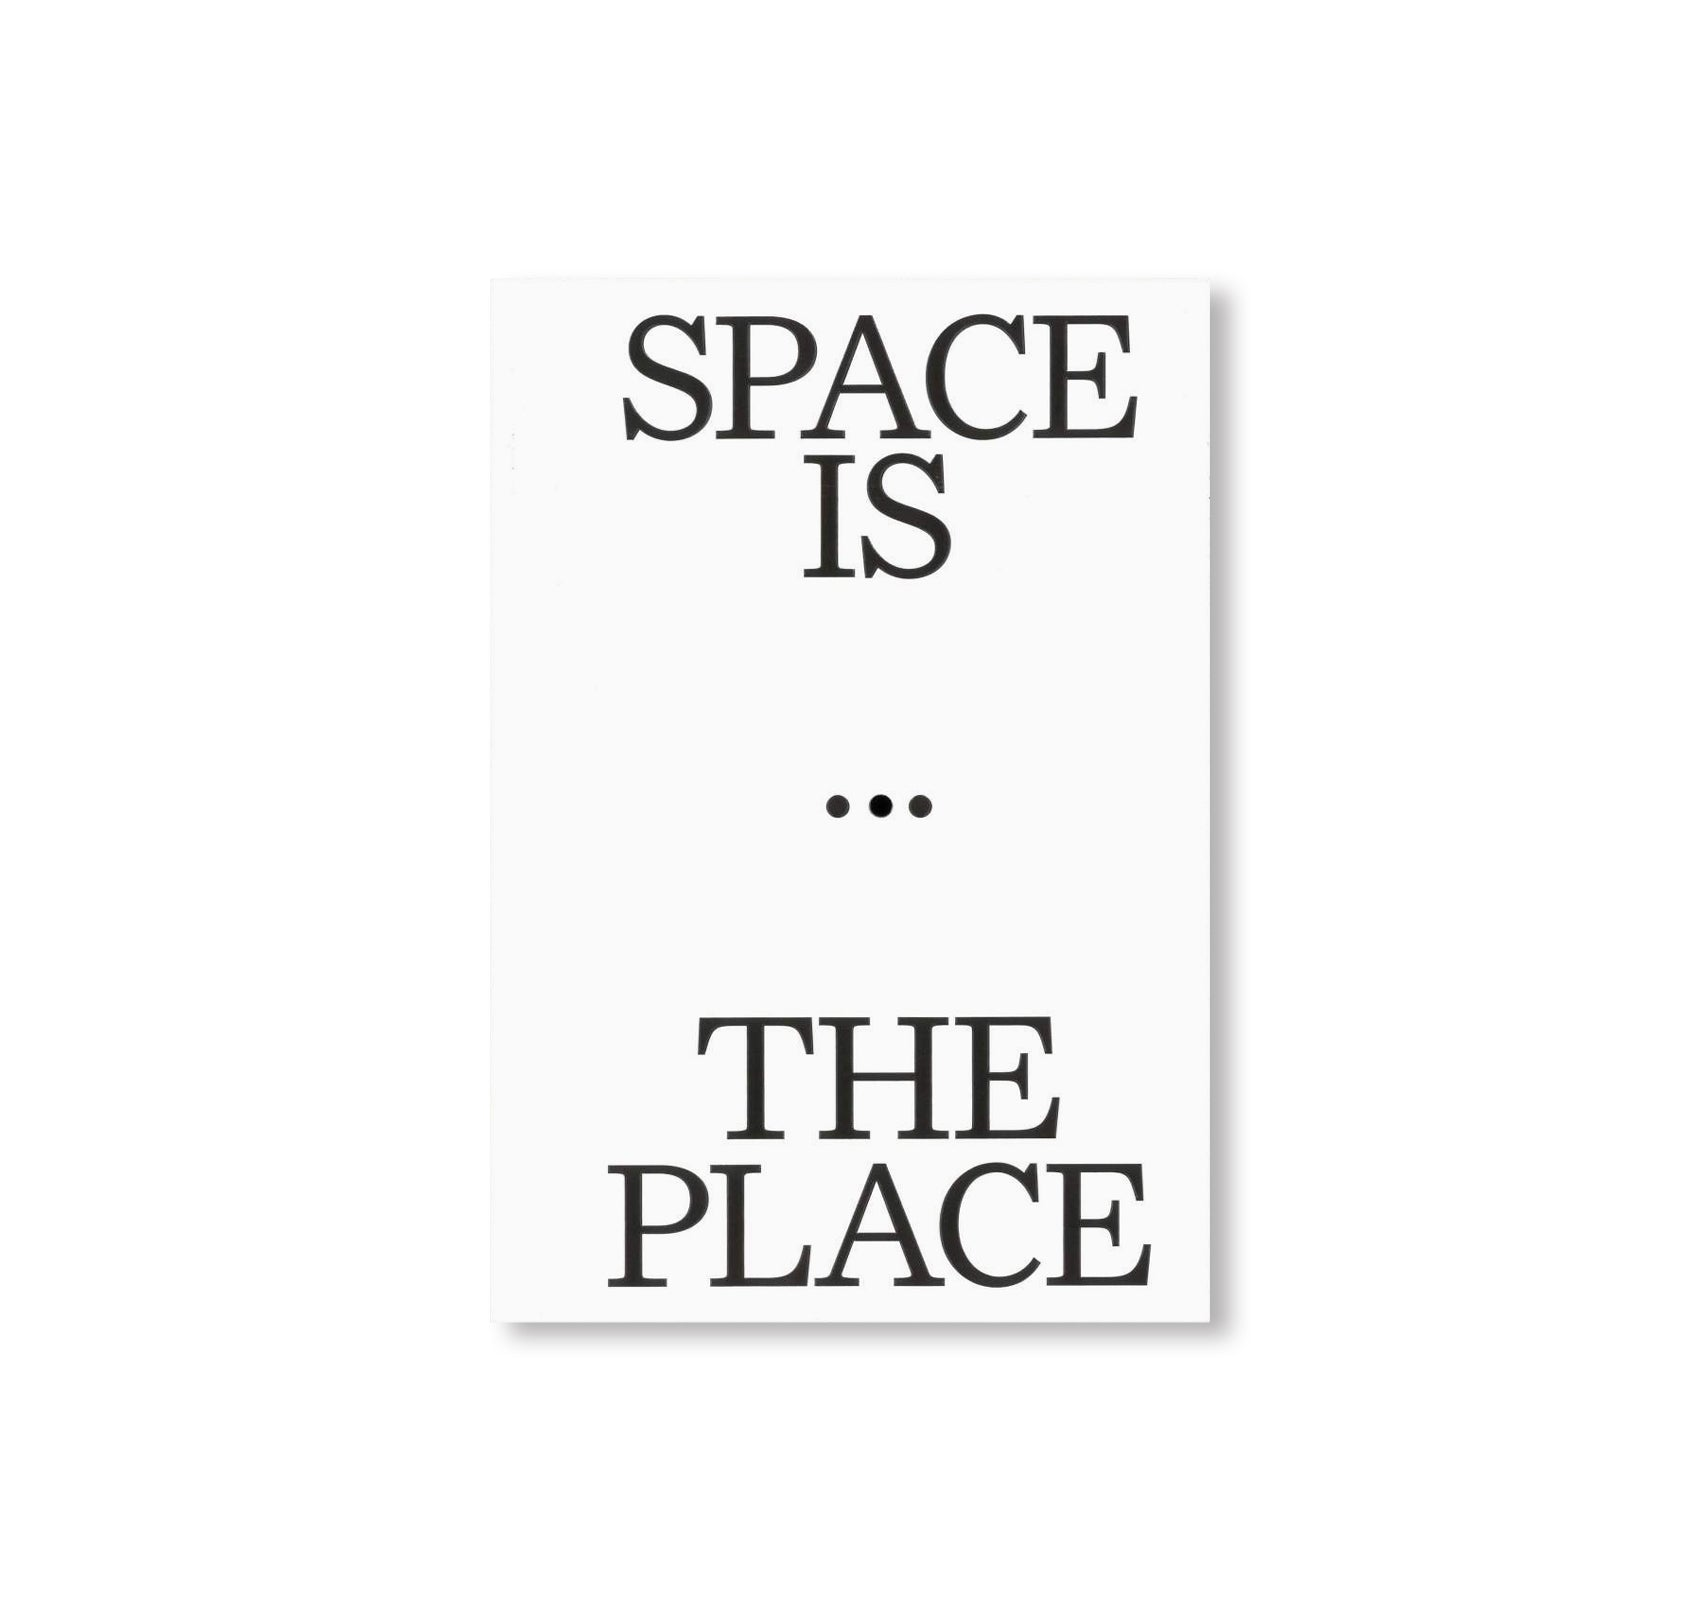 SPACE IS THE PLACE - CURRENT REFLECTIONS ON ART AND ARCHITECTURE by Lukas Feireiss